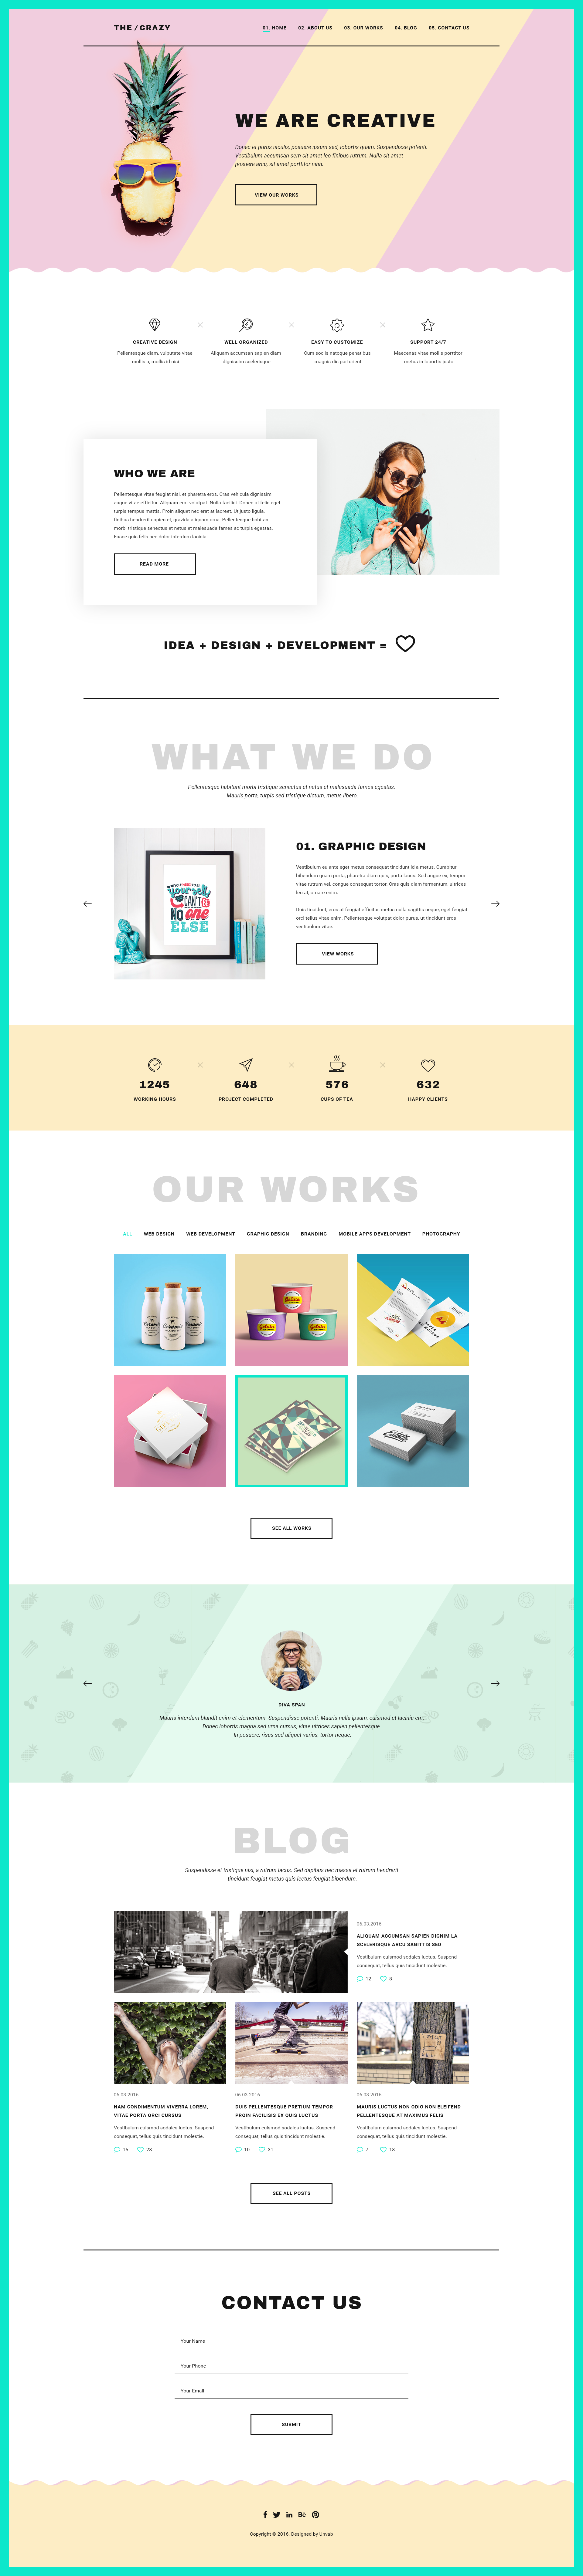 The Crazy - Creative Agency WP Template by NoxonThemes | ThemeForest